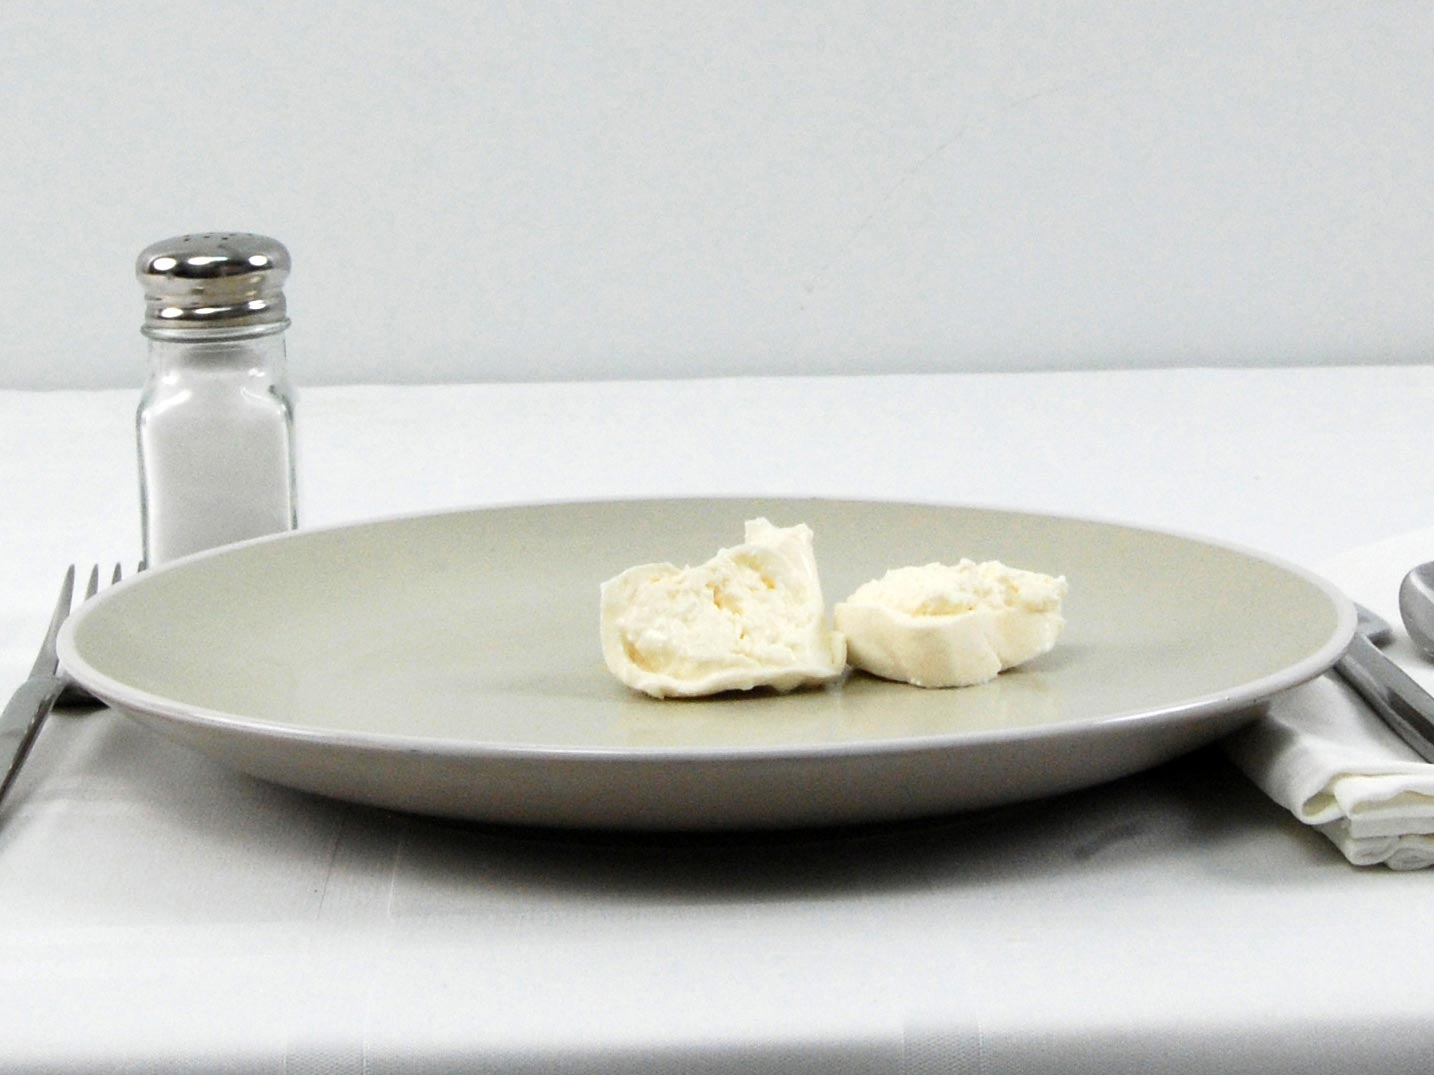 Calories in 56 grams of Burrata Cheese